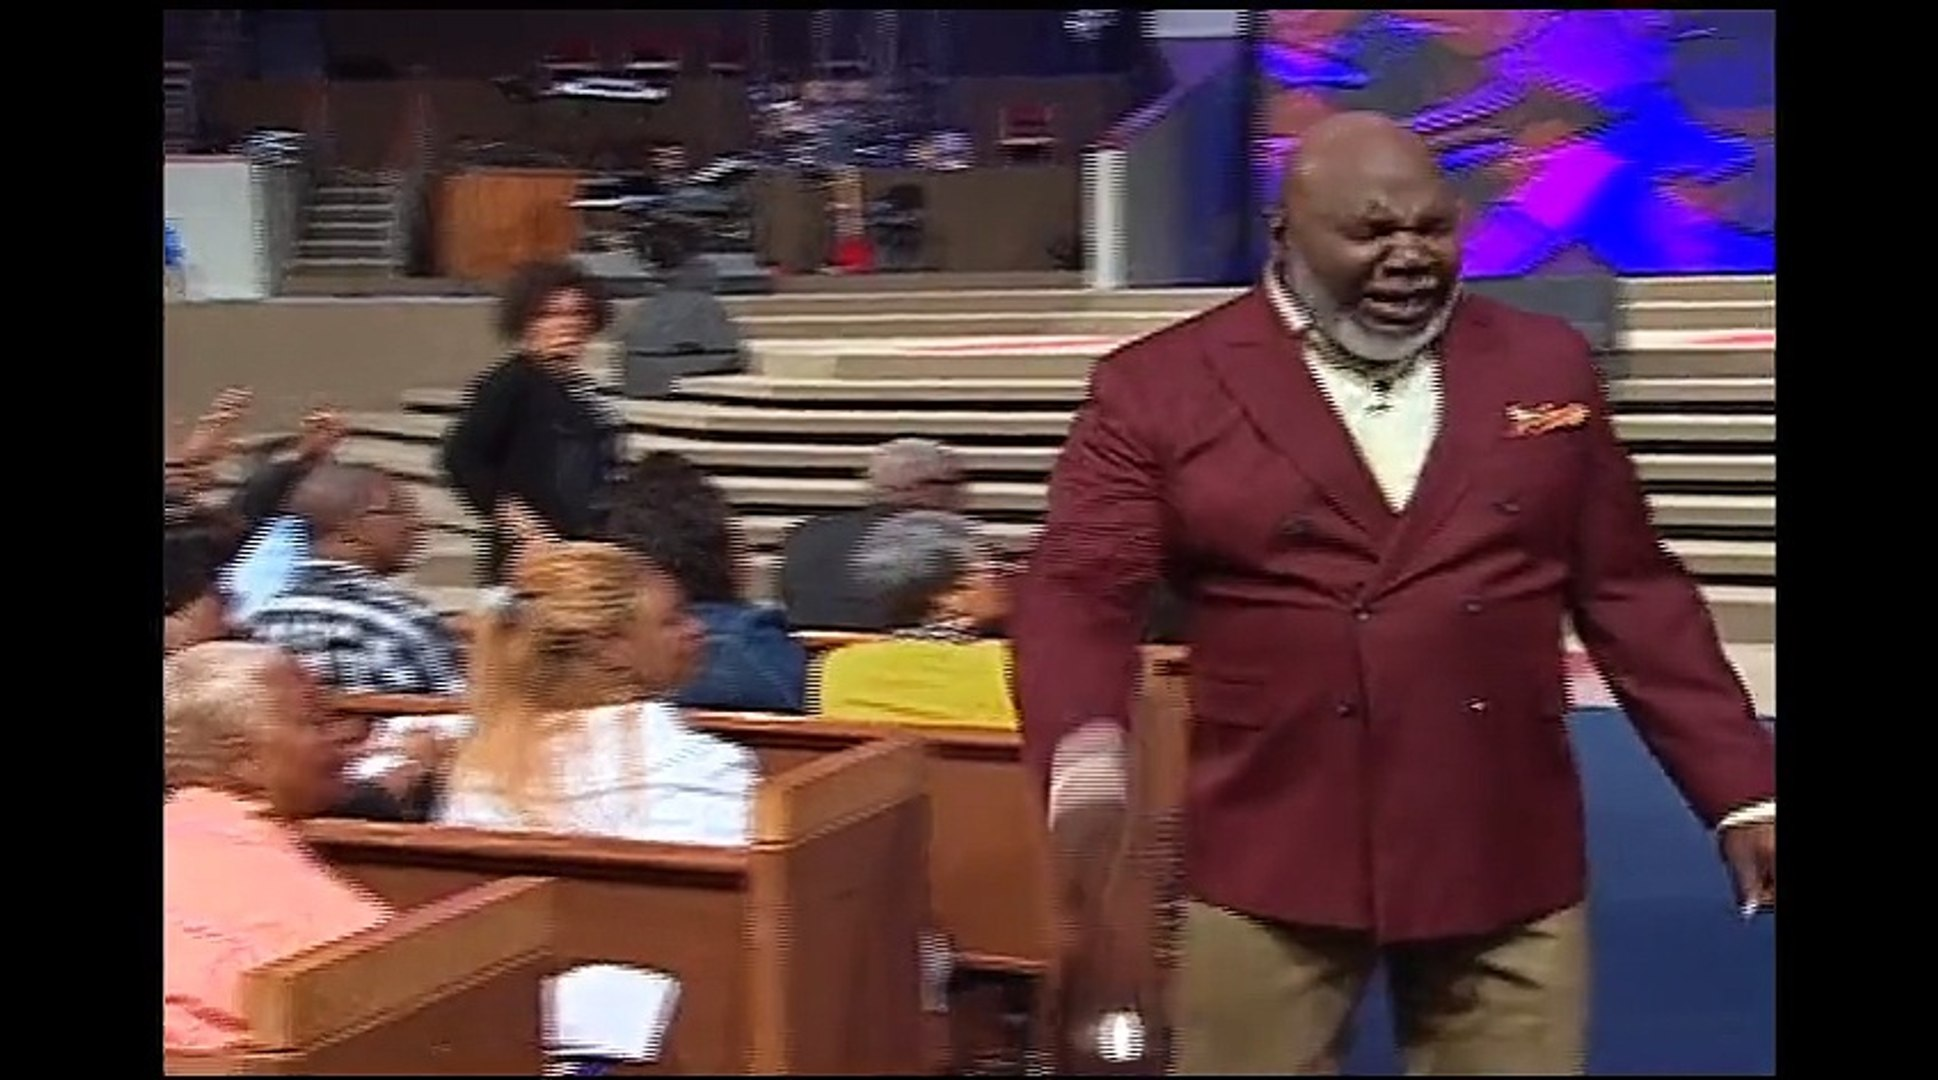 Bishop TD Jakes Sermons 2016 - The Famine Is Over - The Potter's Touch